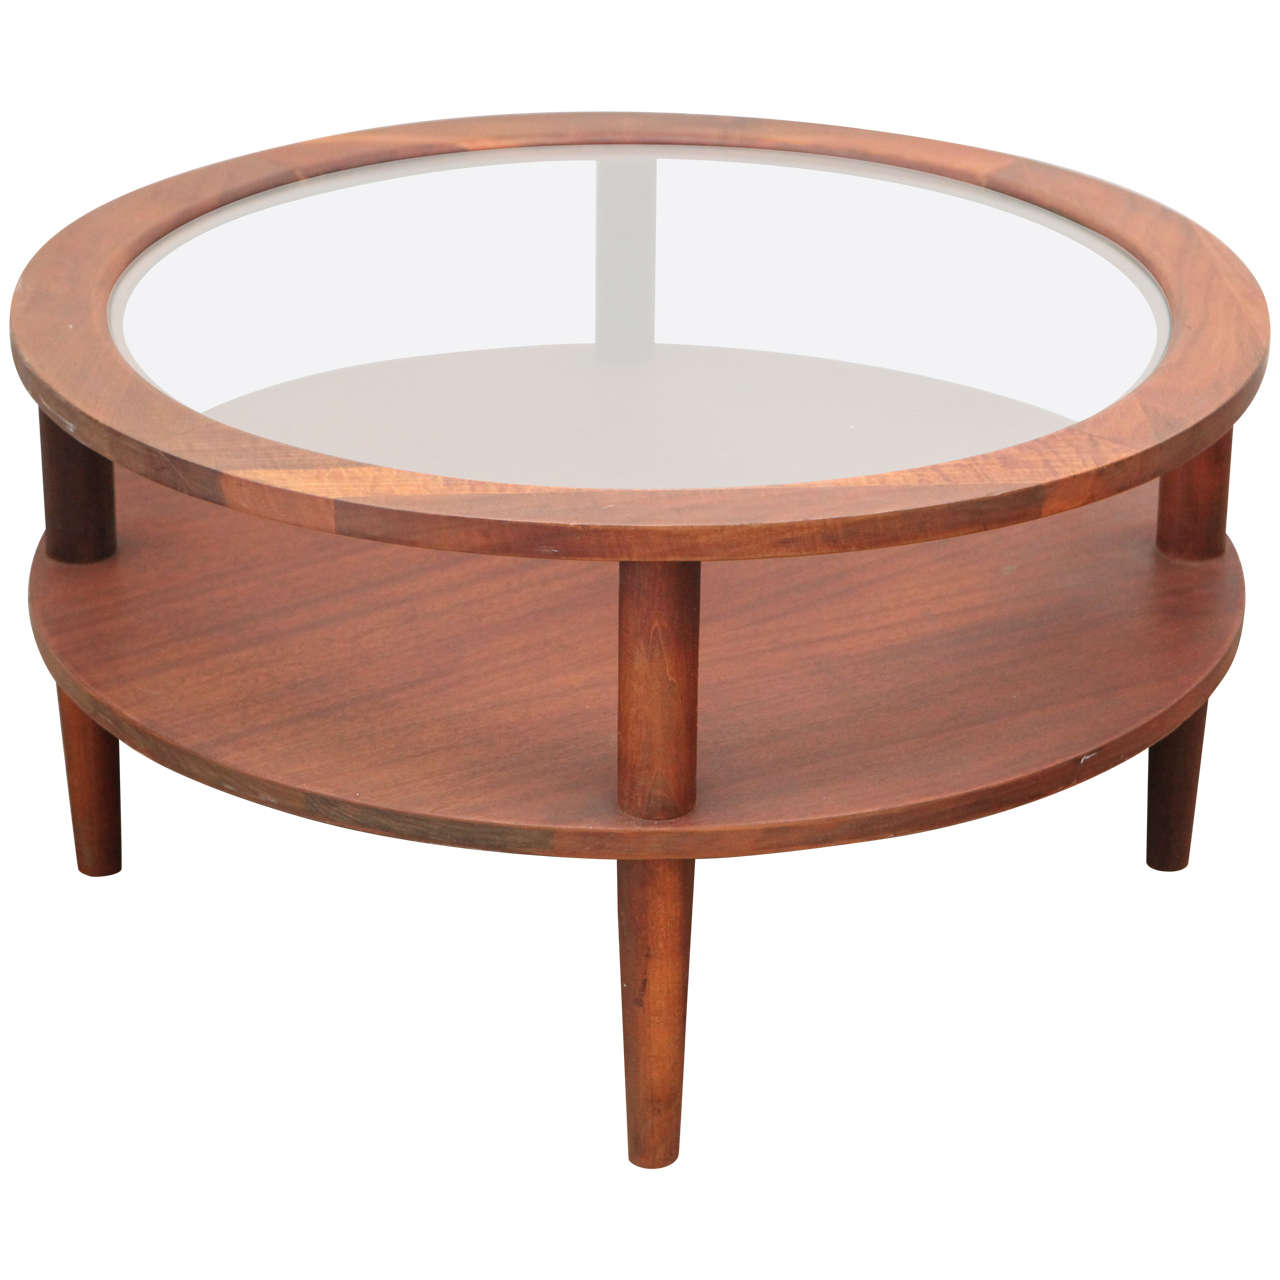 Vintage round glass topped coffee table at 1stdibs for Round glass coffee table top